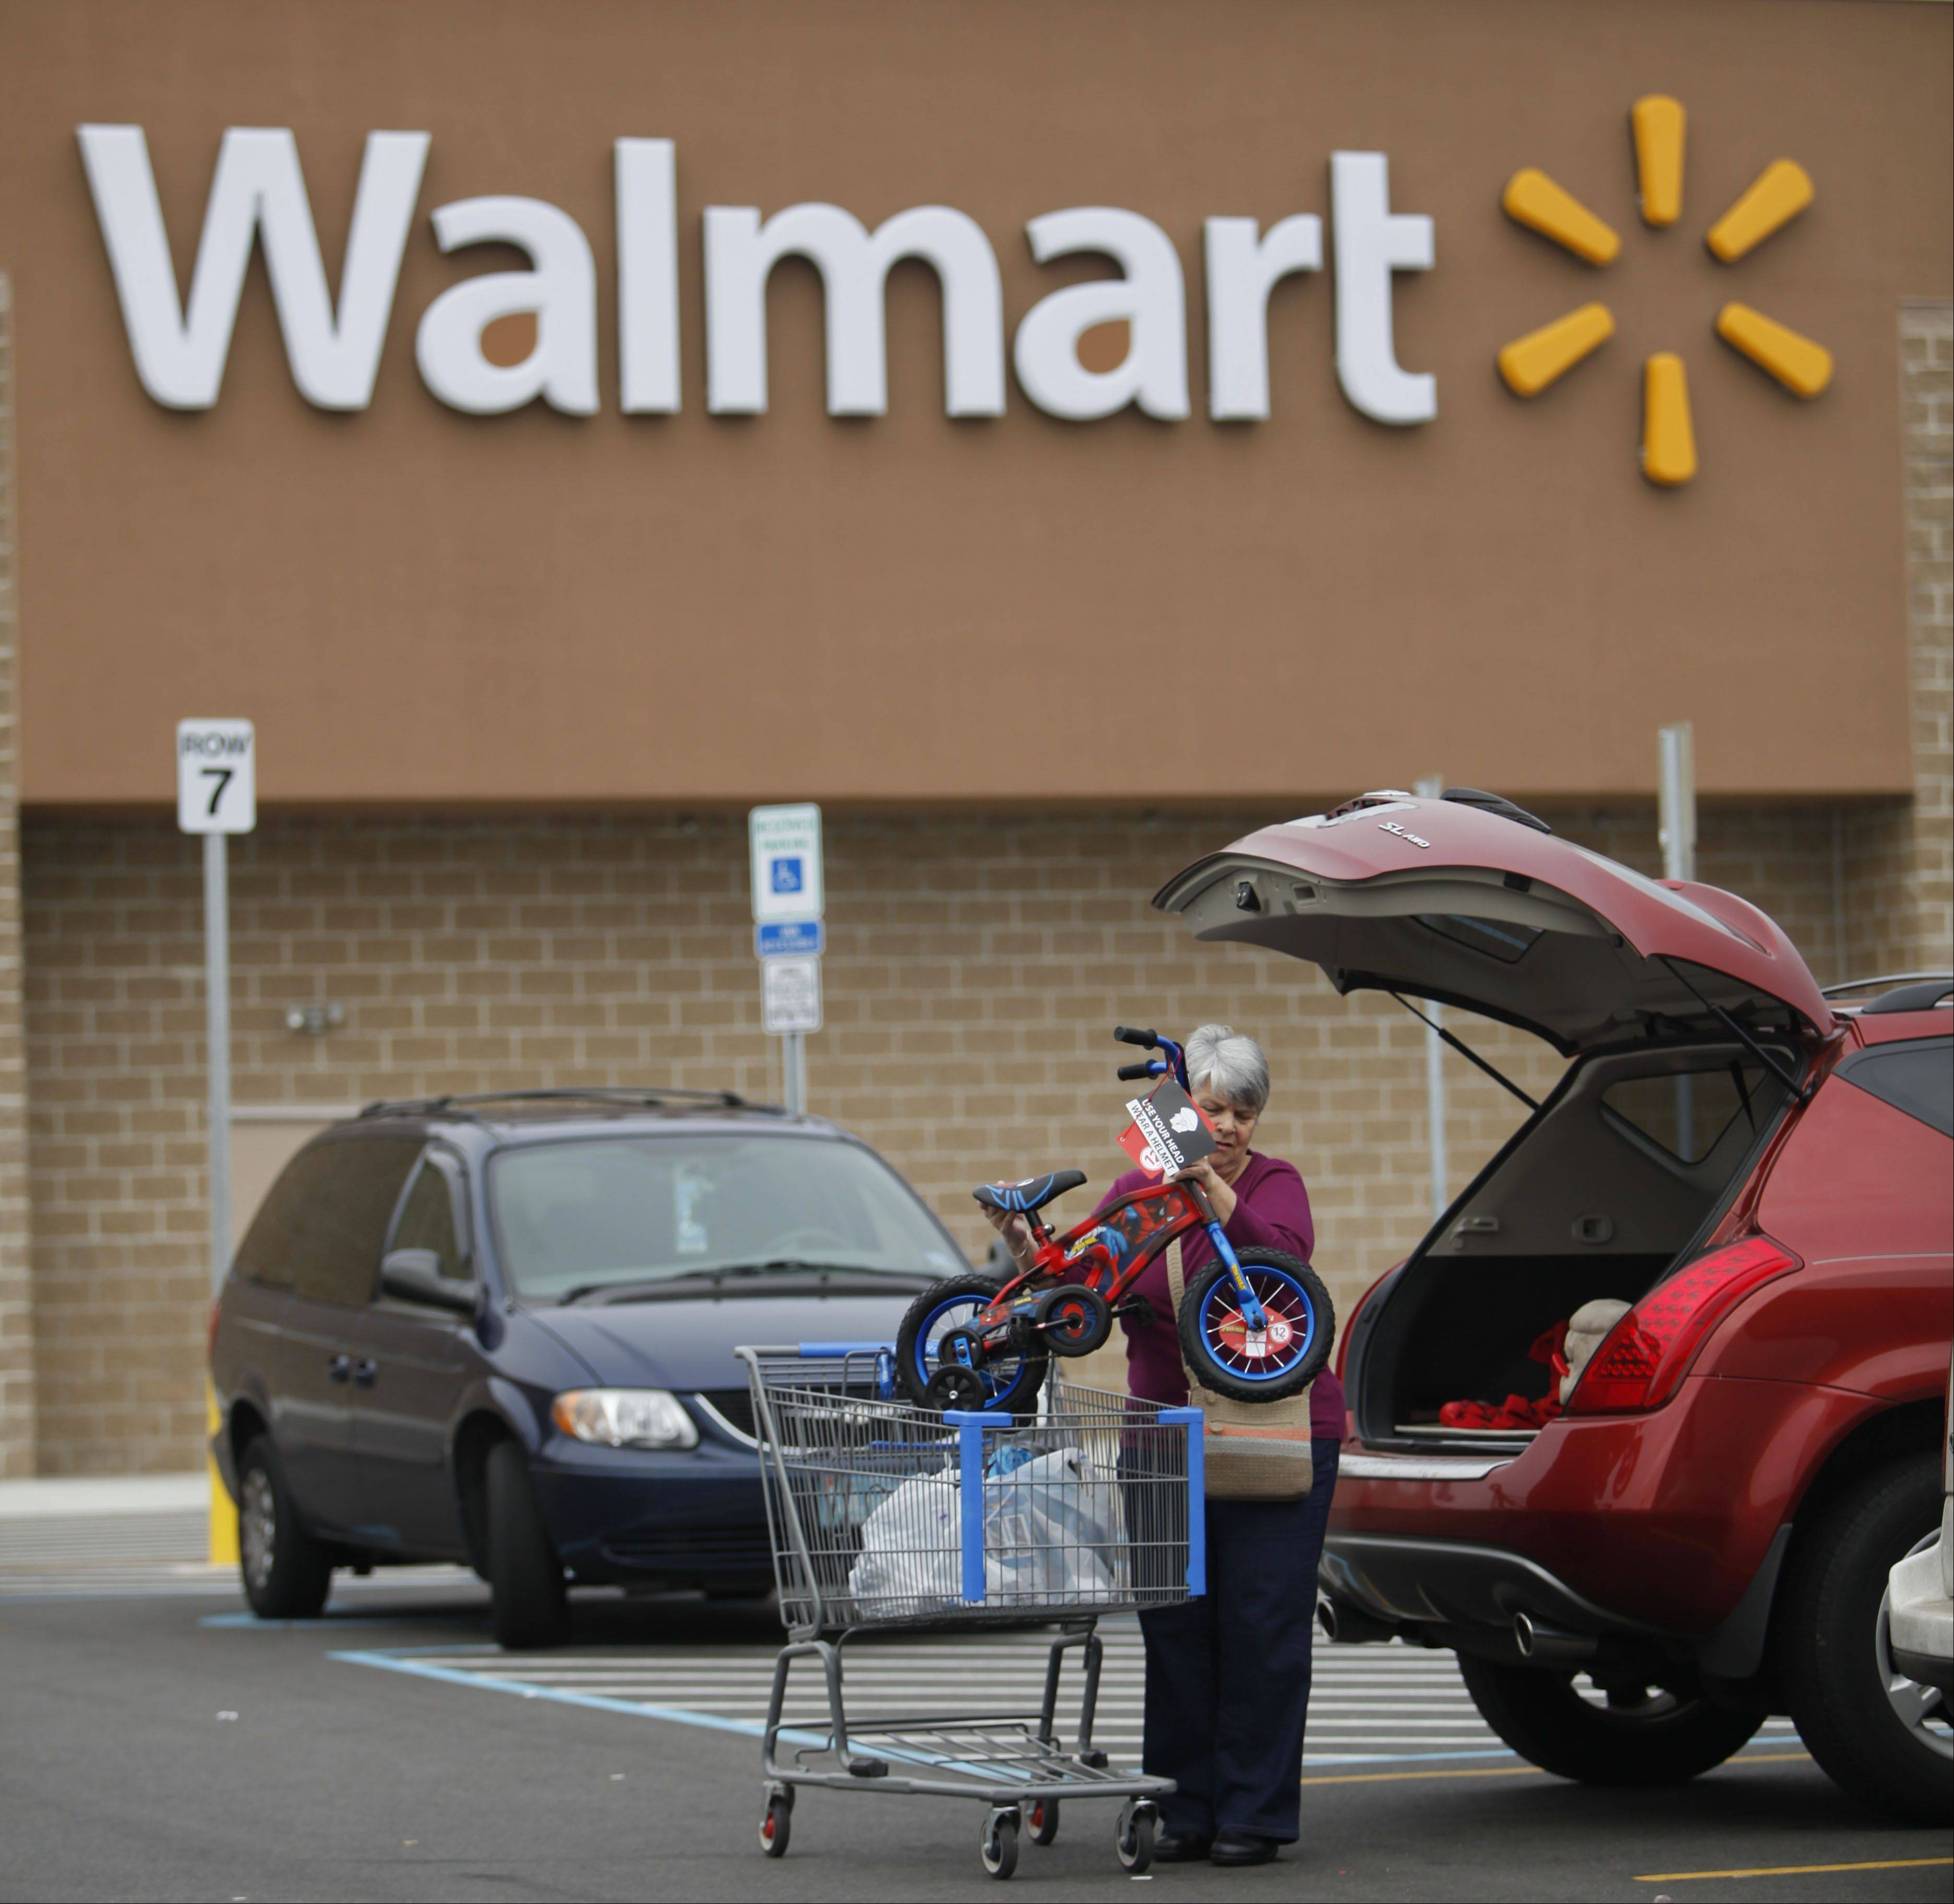 The D.C. Council issued a legislative rebuke to Wal-Mart on Wednesday, approving a bill that would require the retail giant and other big-box chain retailers operating in the nation�s capital to pay their employees a �living wage� of at least $12.50 an hour.